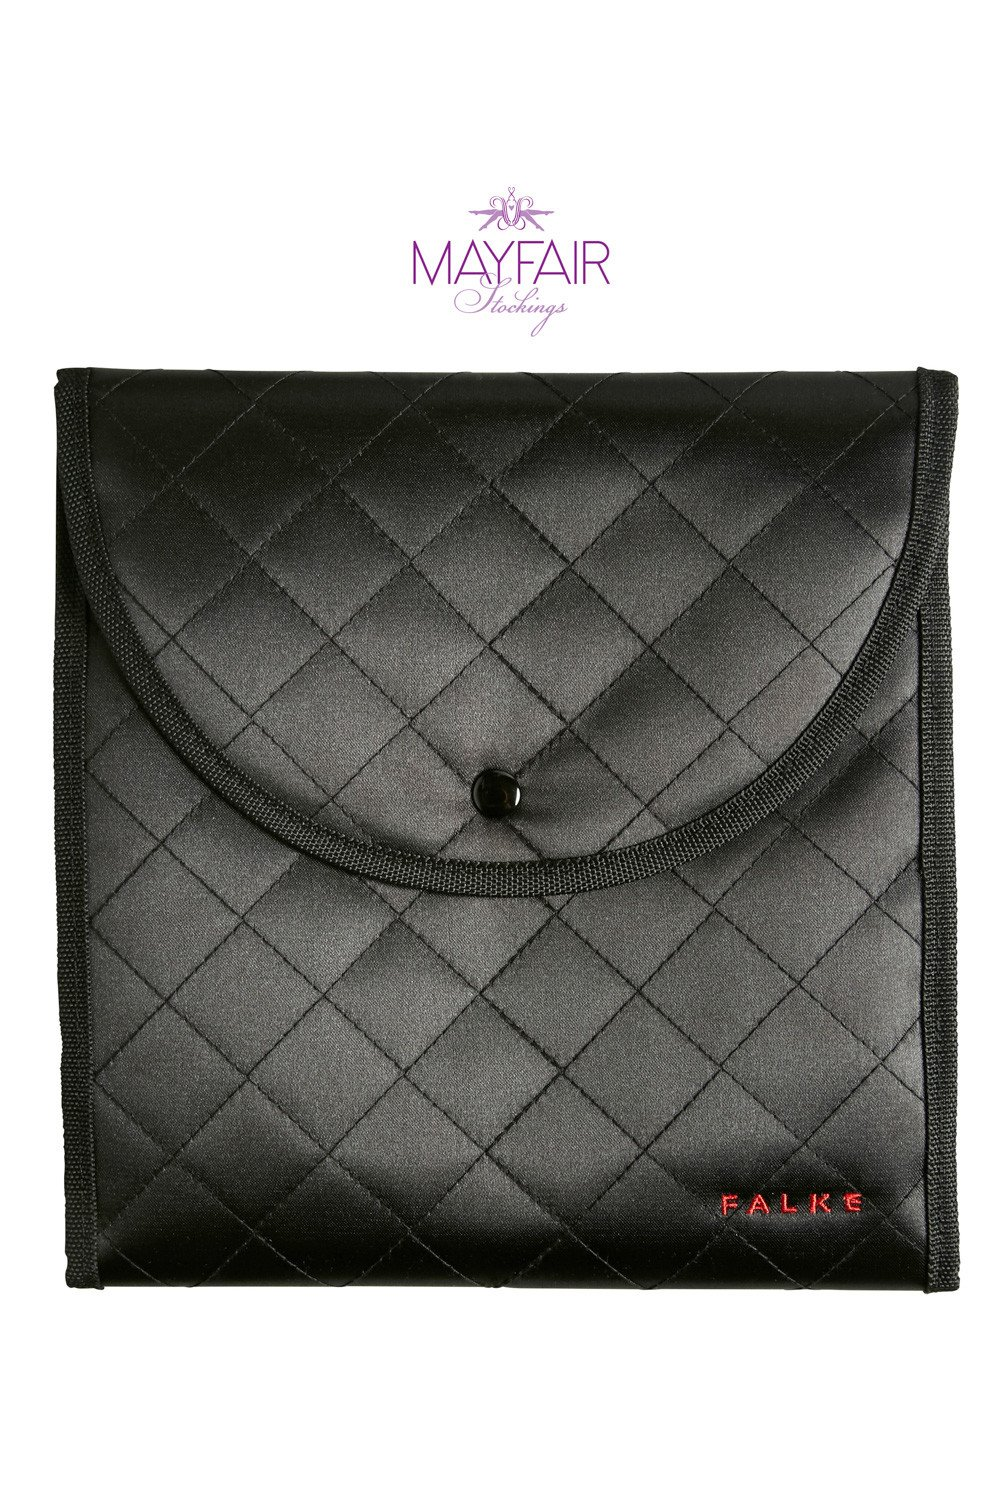 Falke Hosiery Bag